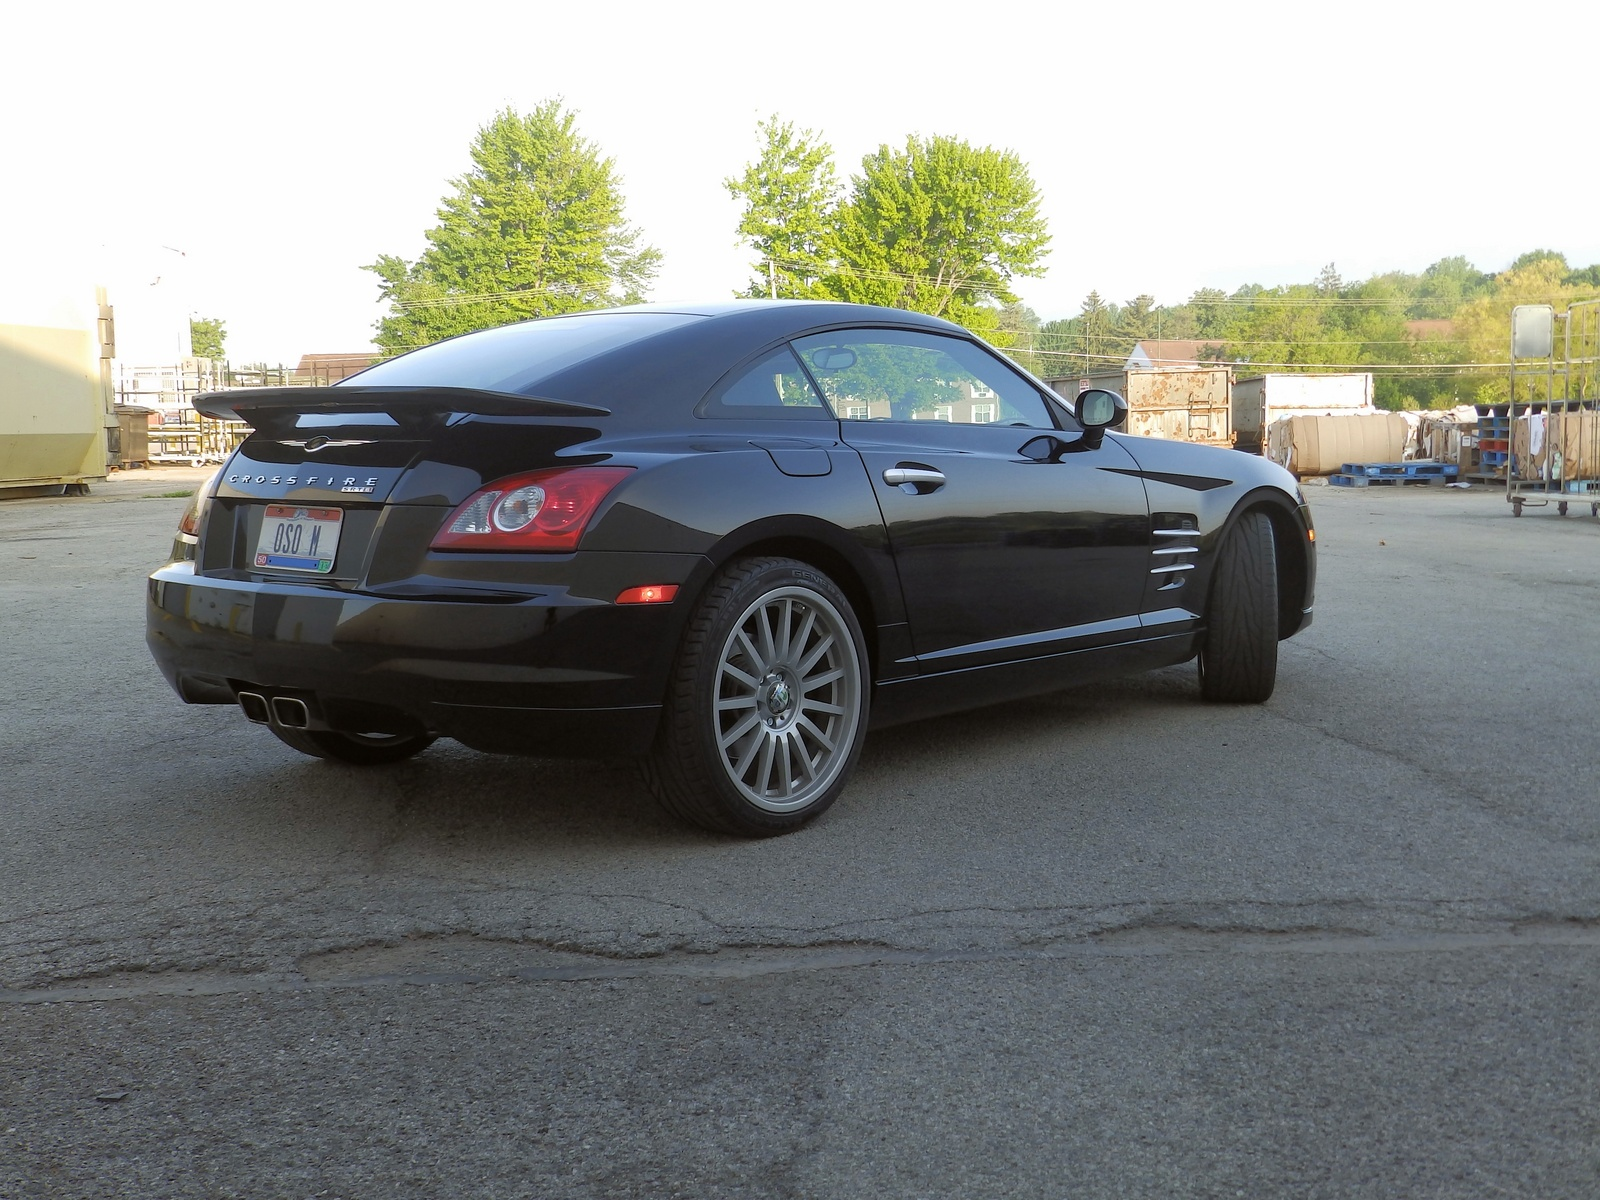 2005 chrysler crossfire srt 6 specifications cargurus. Cars Review. Best American Auto & Cars Review